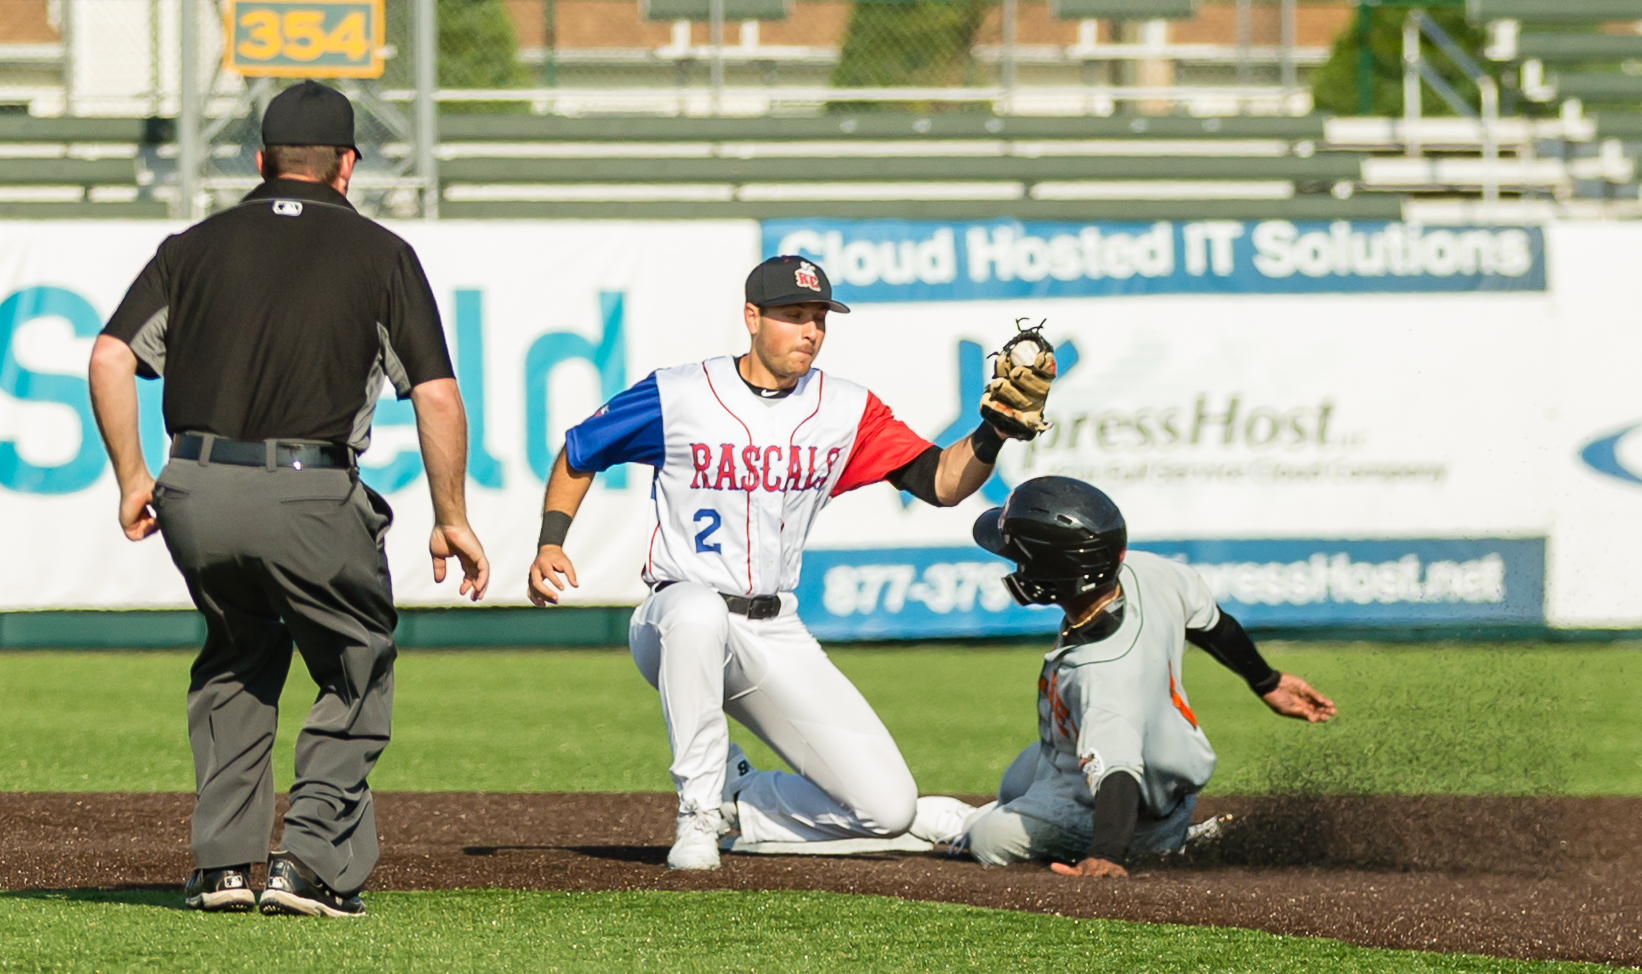 Rascals Fall in Finale